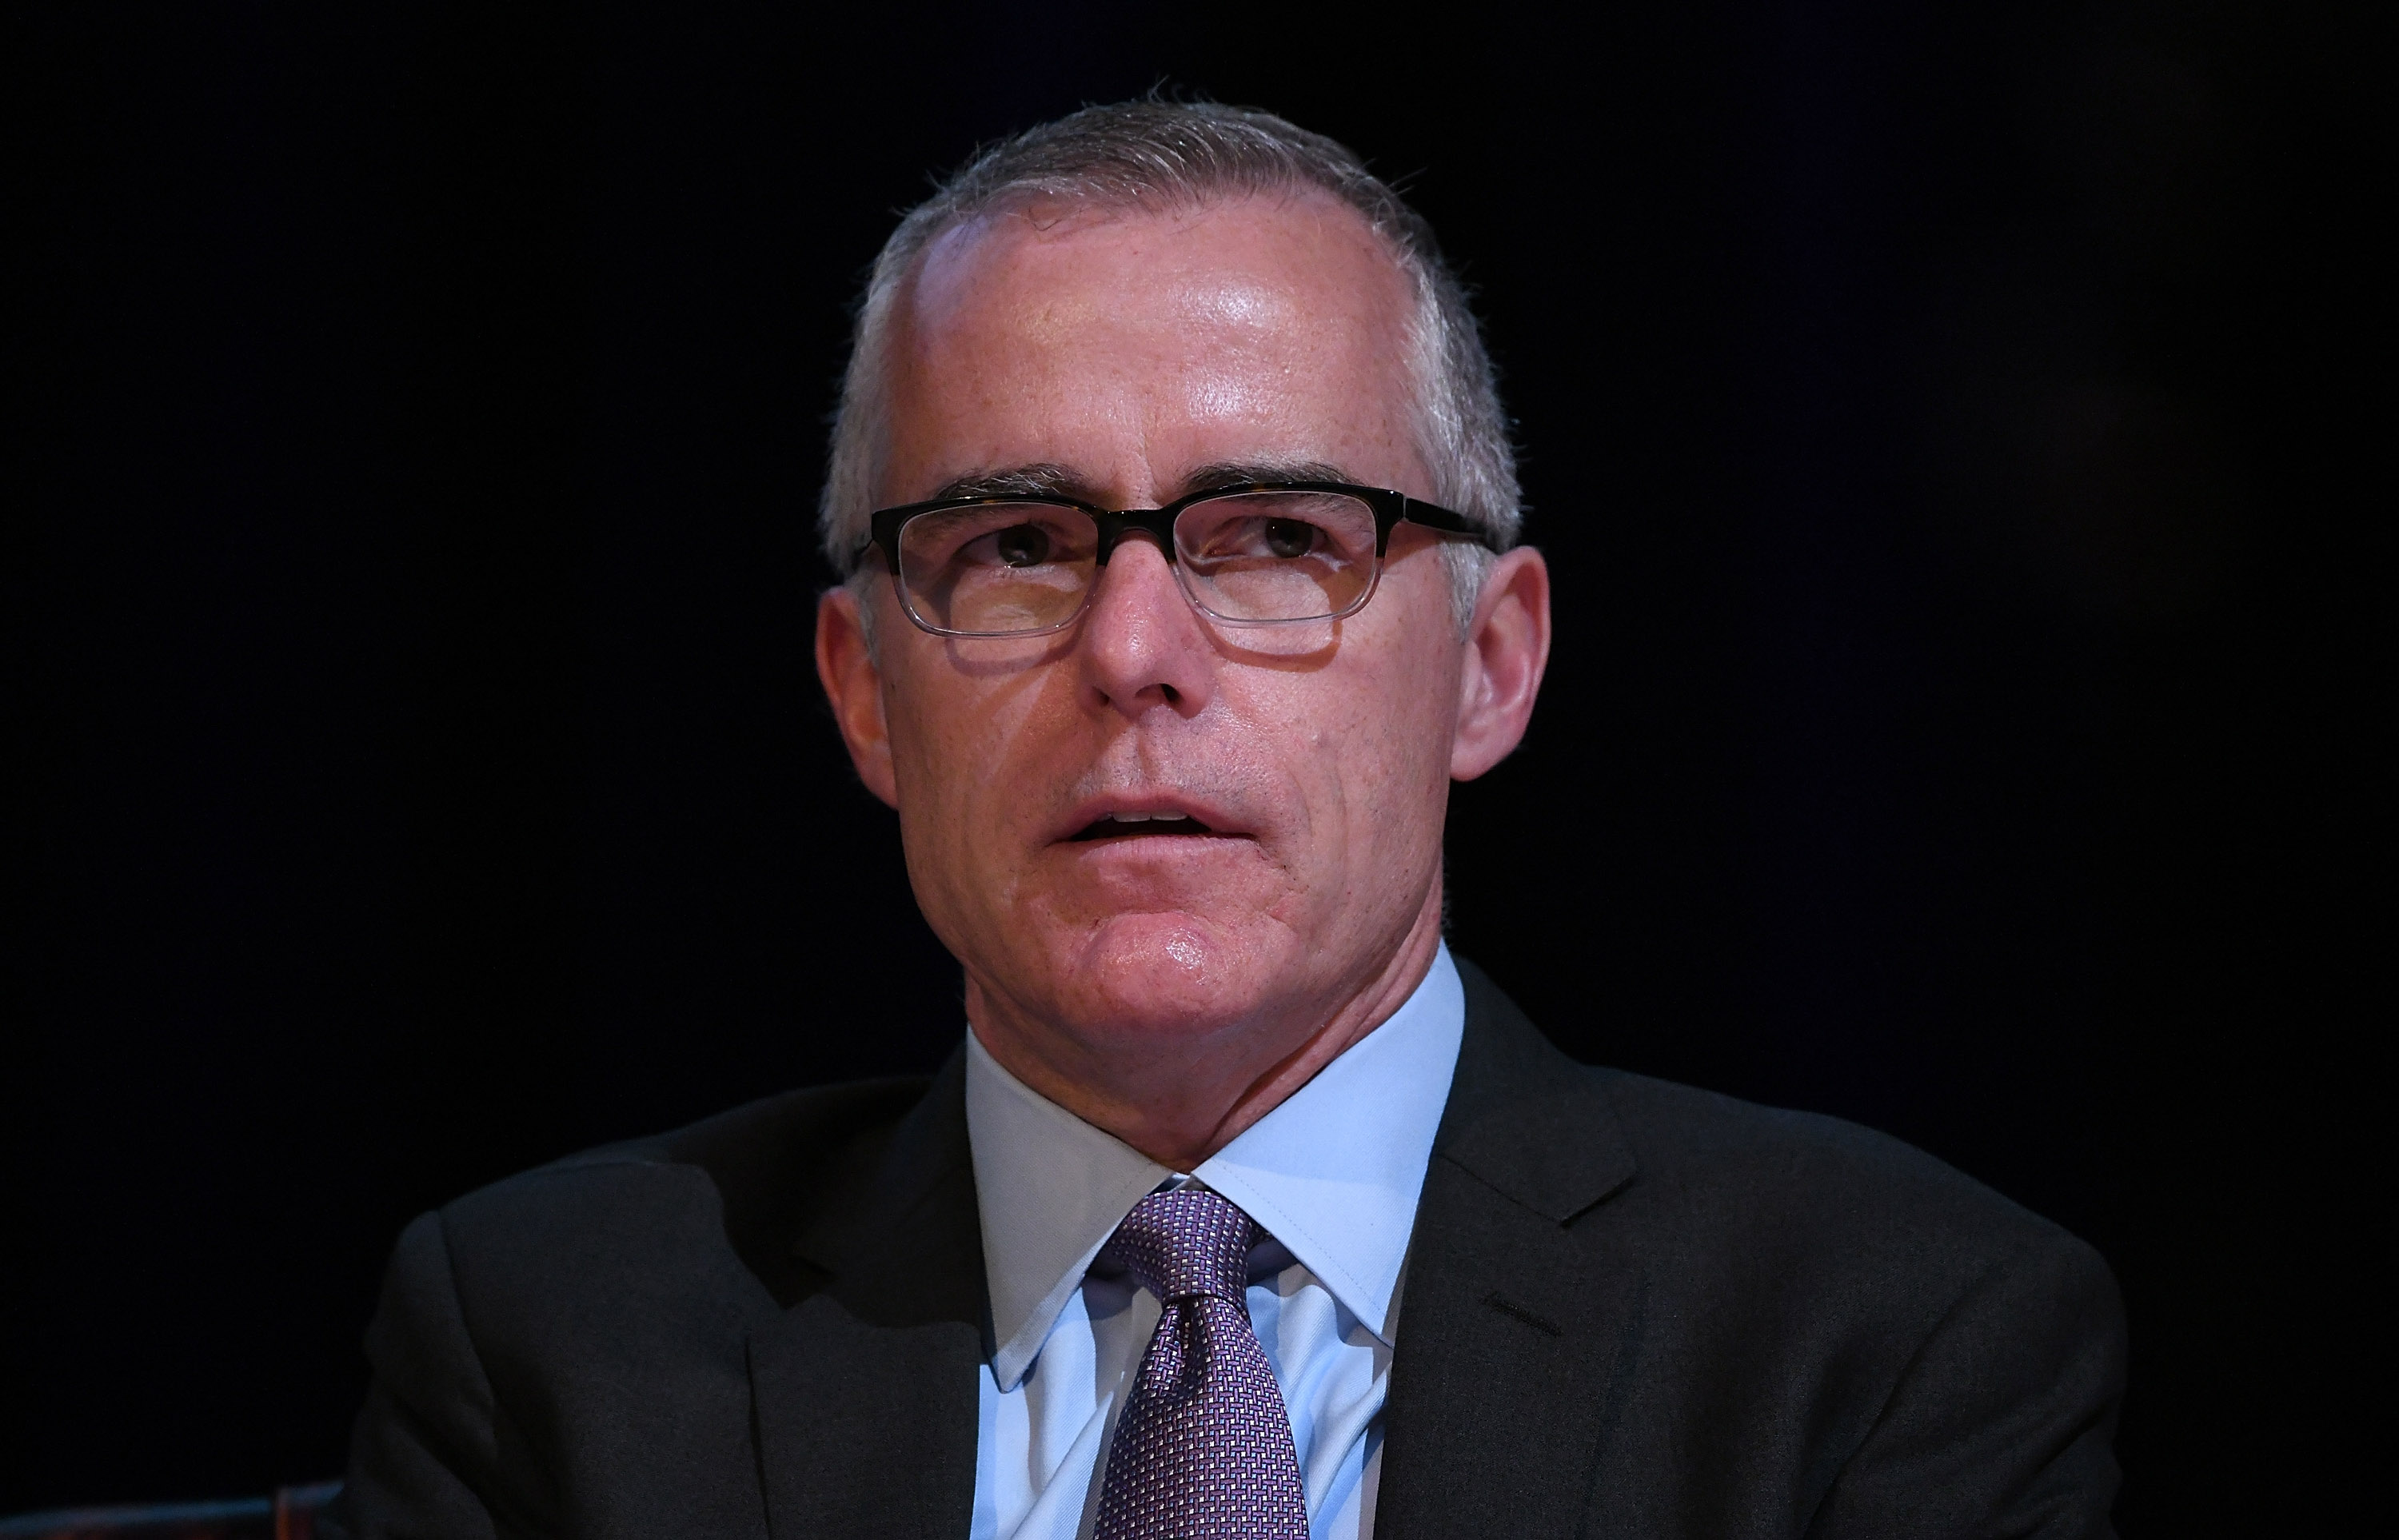 Andrew McCabe and Peter Strzok are both suing the Justice Department